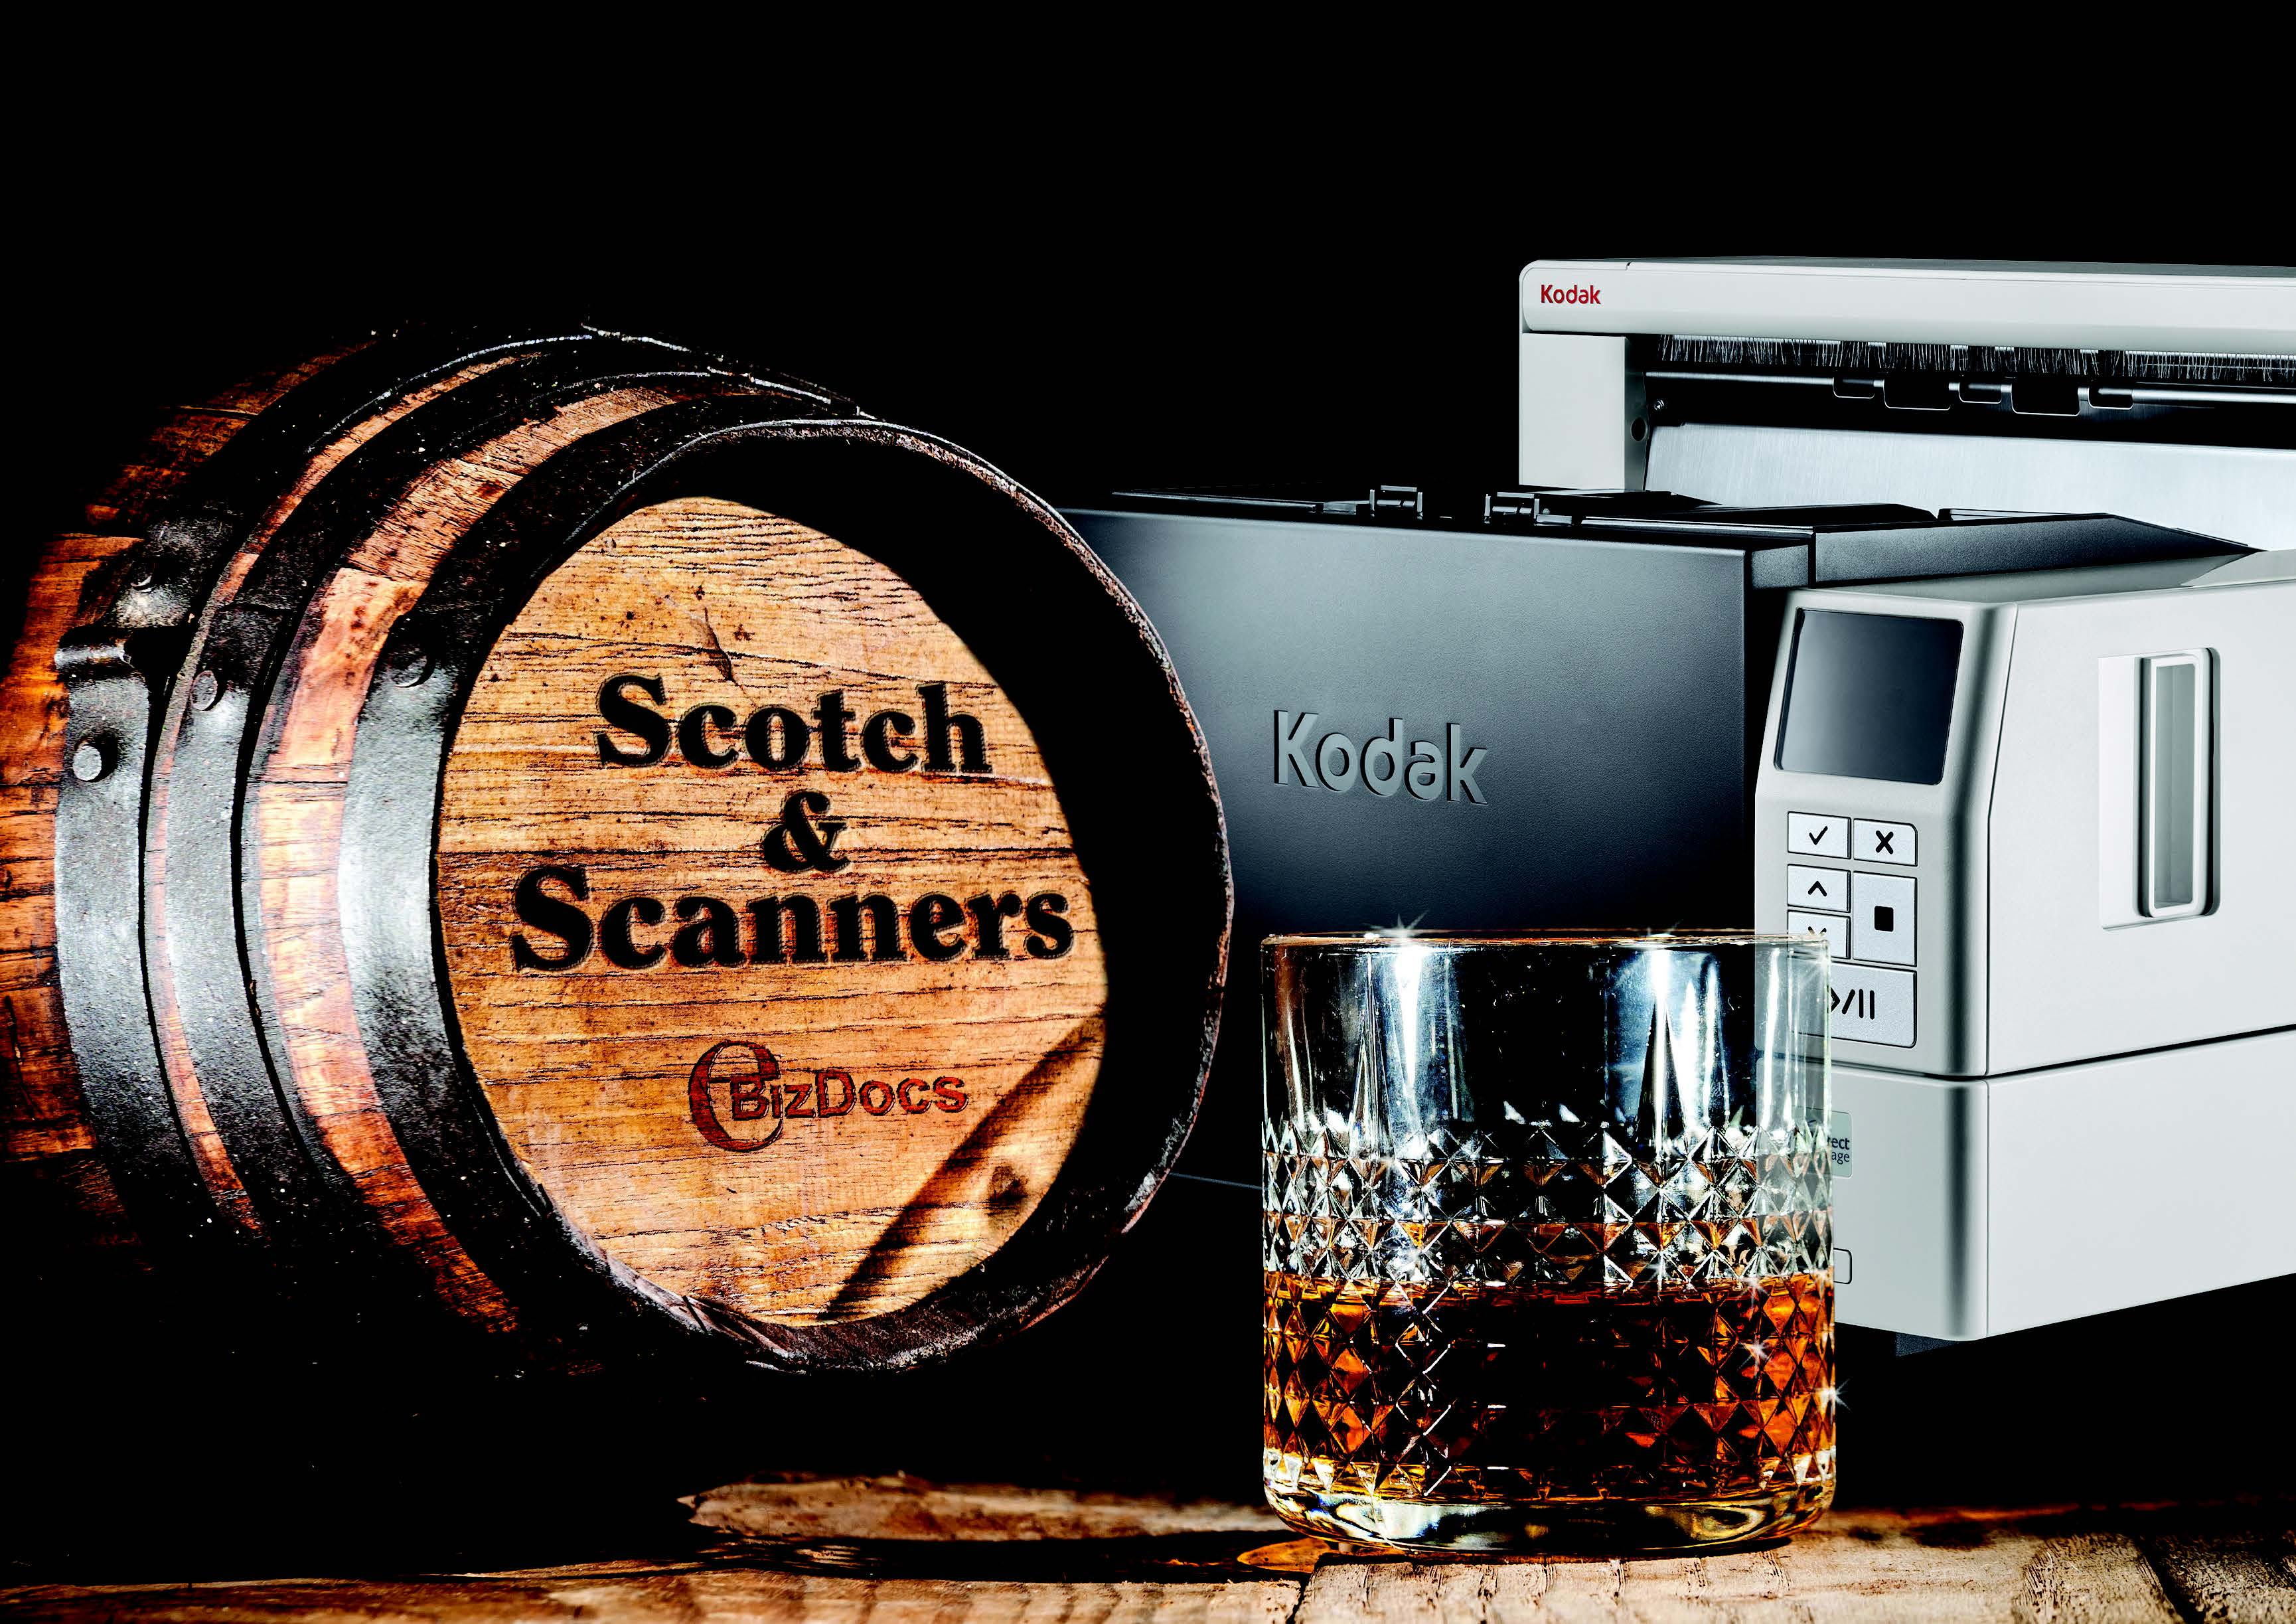 Join us for Scotch and Scanners!